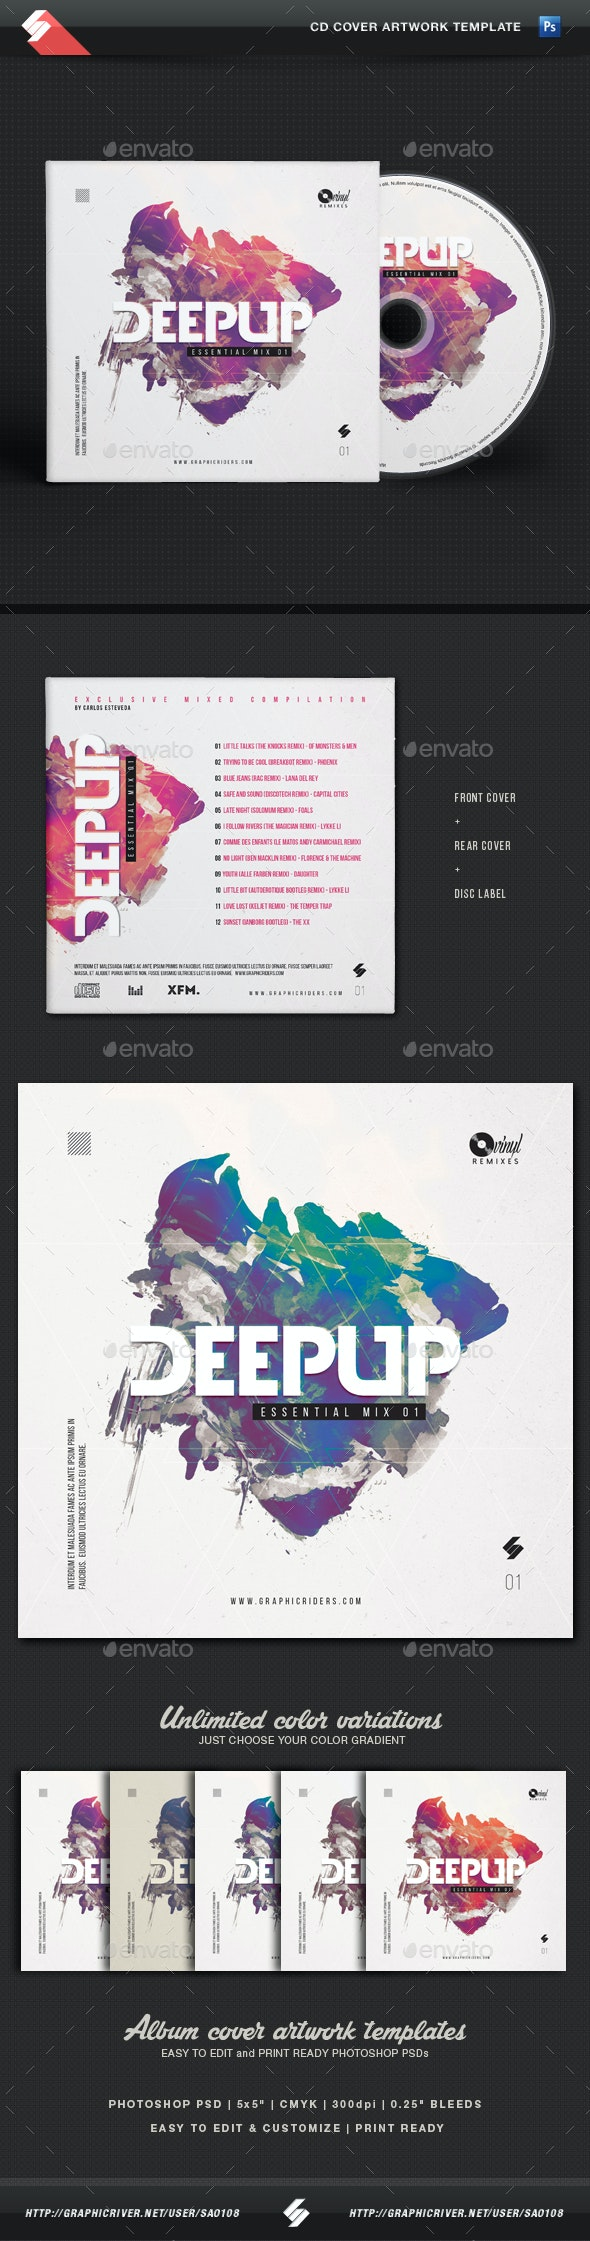 Deep Up - Dj Mix CD Cover Artwork Template - CD & DVD Artwork Print Templates